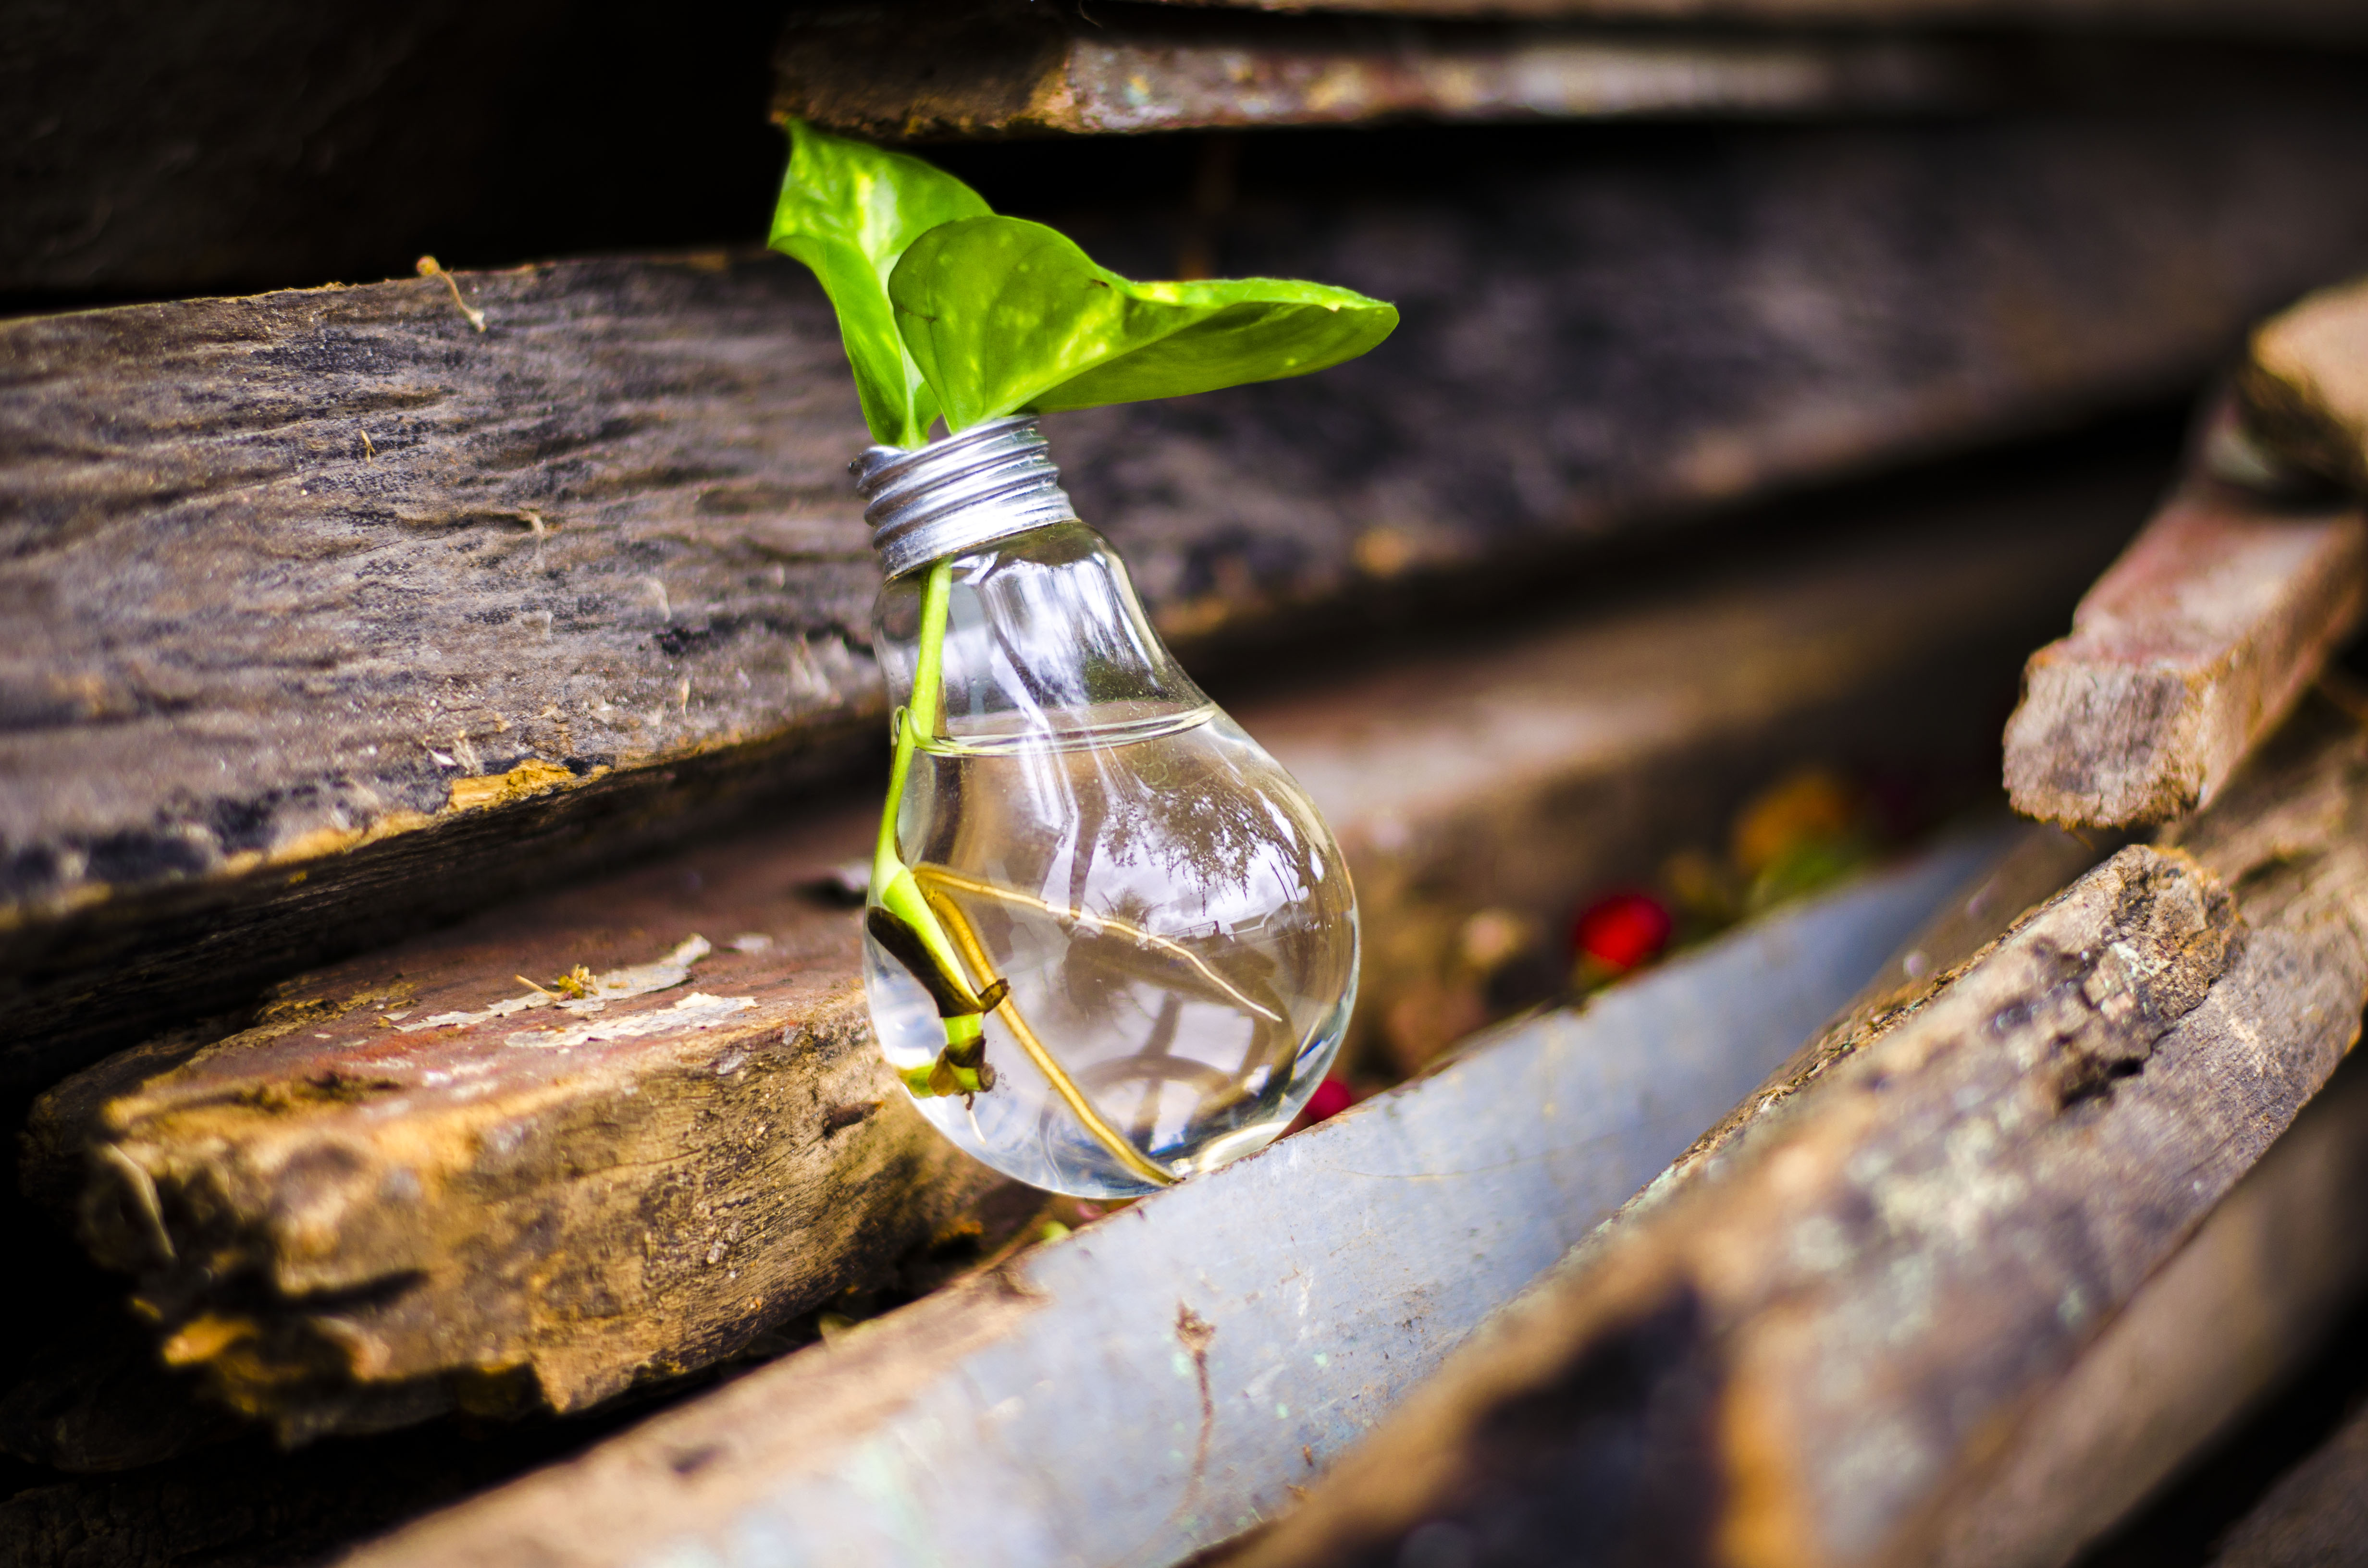 A photo of a plant sprouting from light bulb from Pexels